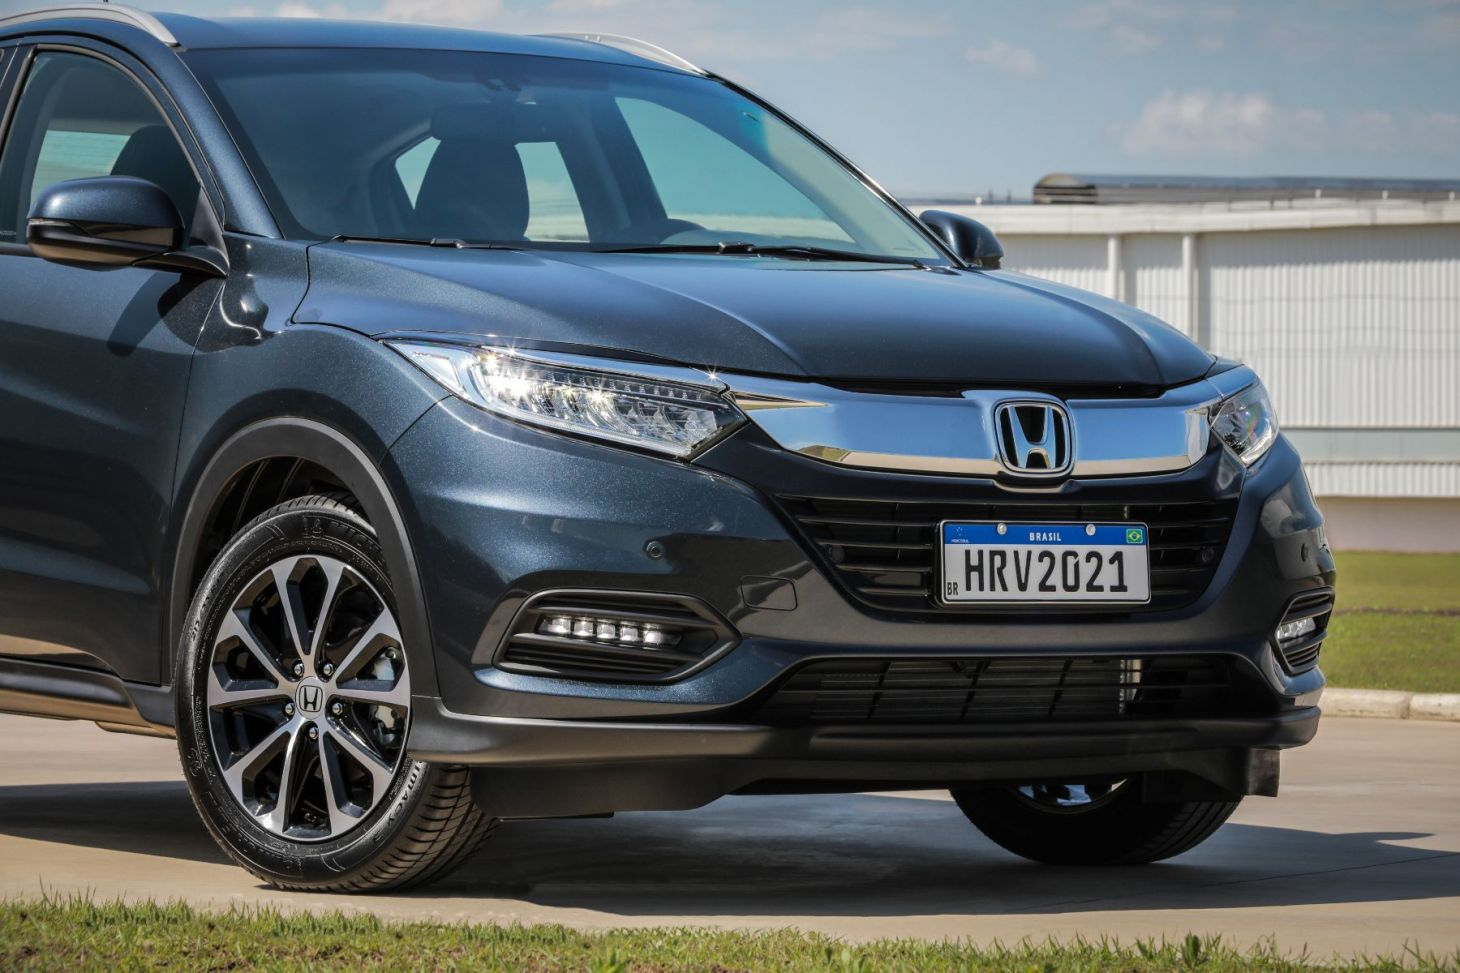 grade e farois do honda hr v 2021